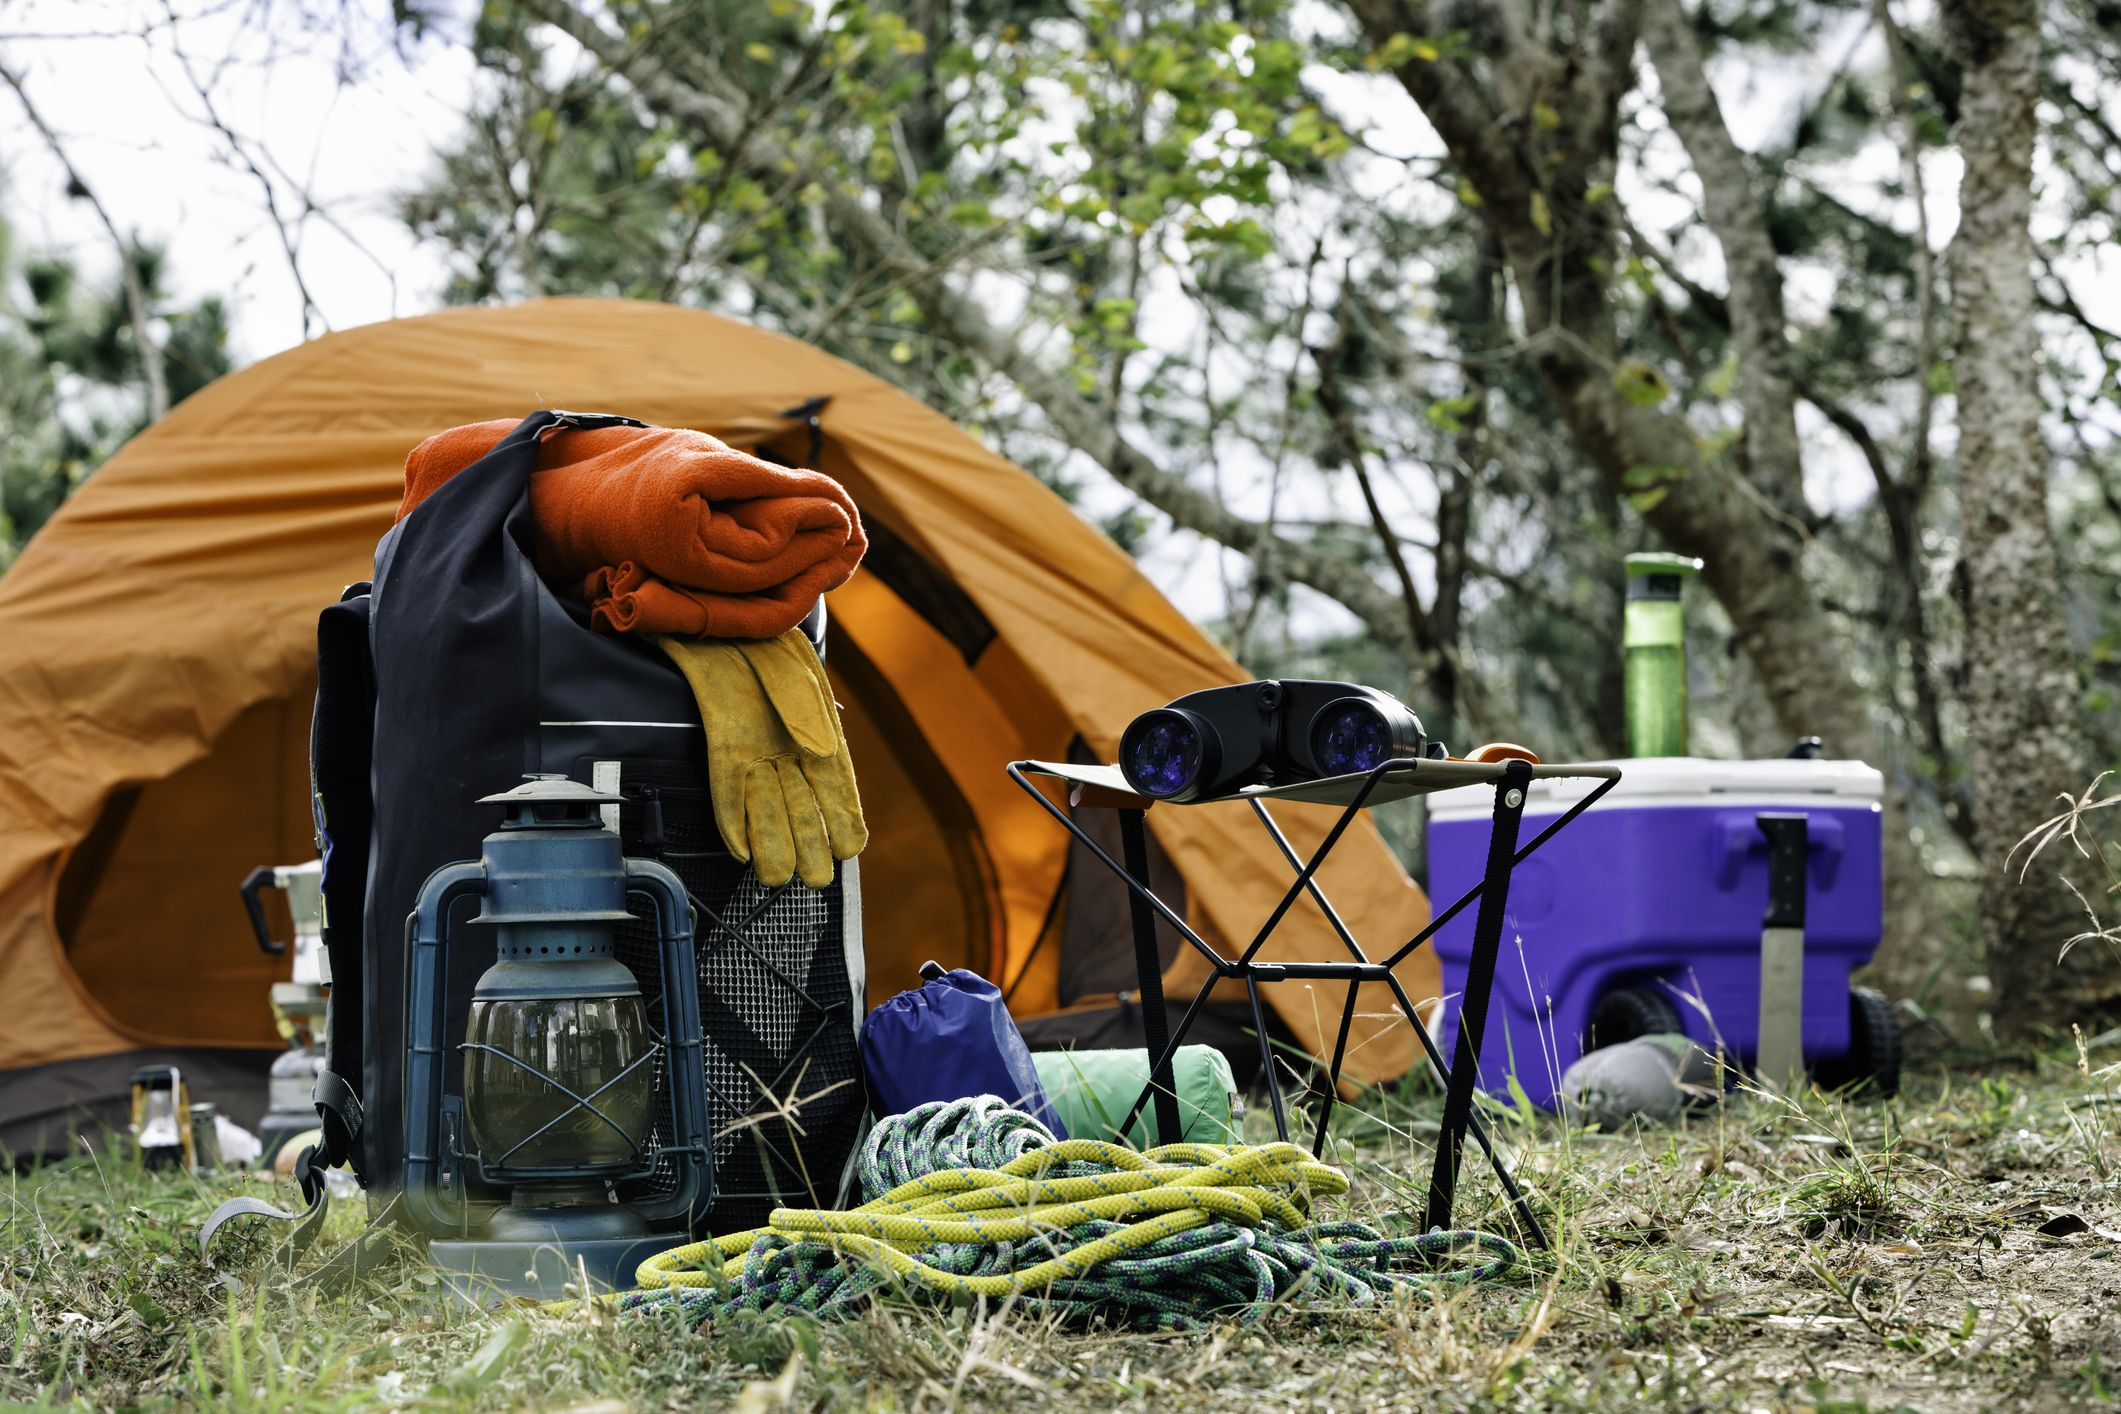 """The 8 Best Survival Gear """"Bug Out Bag"""" Items of 2019"""